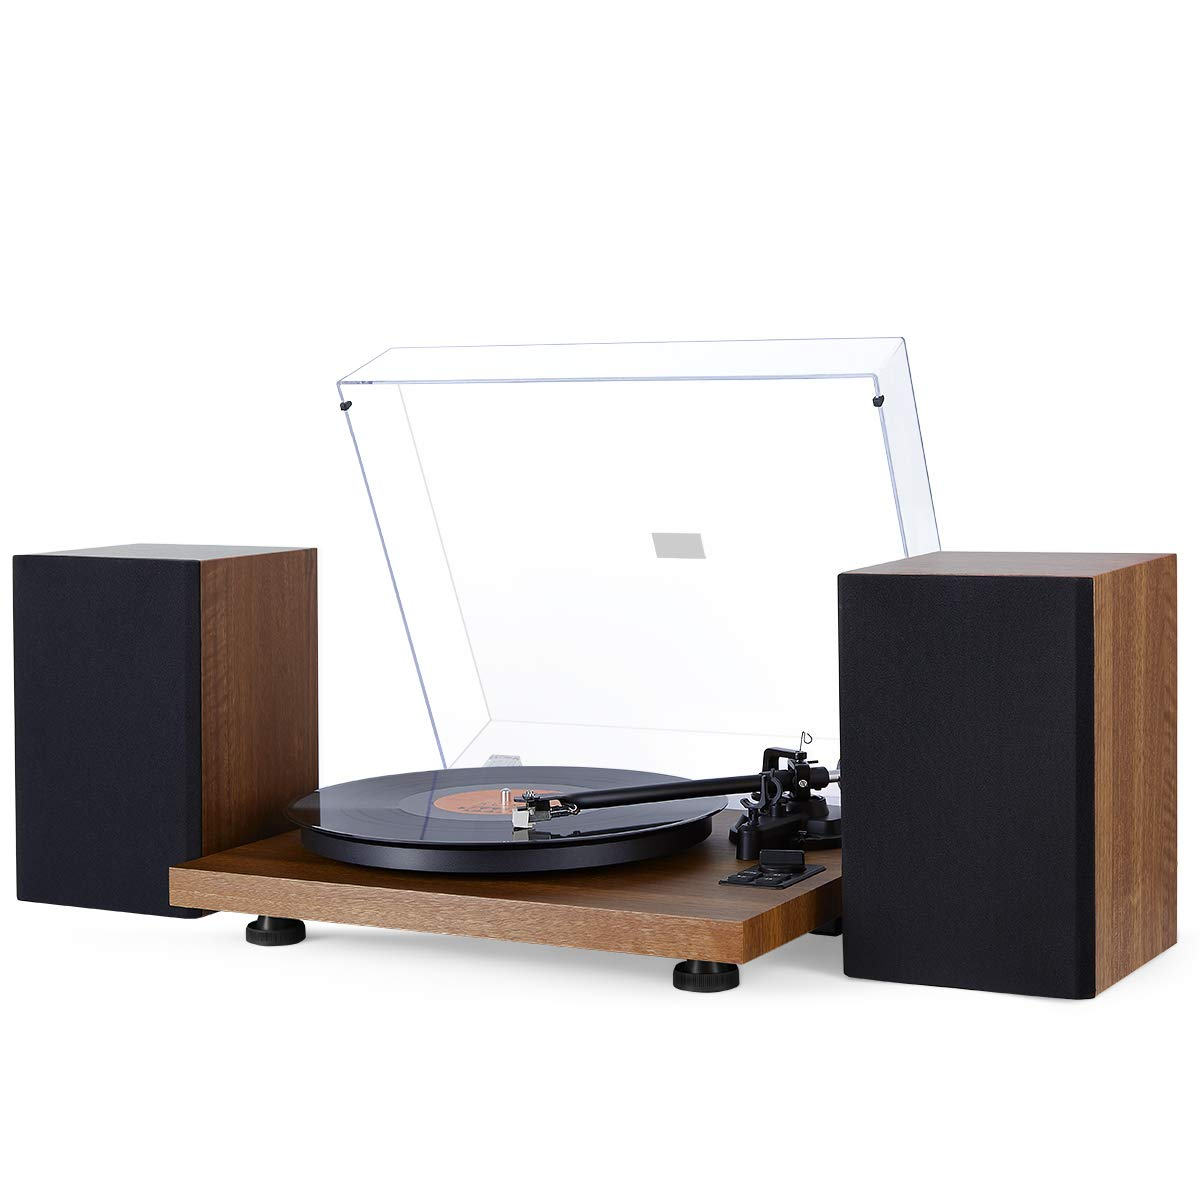 1byone Wireless  Turntable Hi-Fi System with 36 Watt Bookshelf Speakers, Vinyl Record Player with Magnetic Cartridge by 1 BY ONE